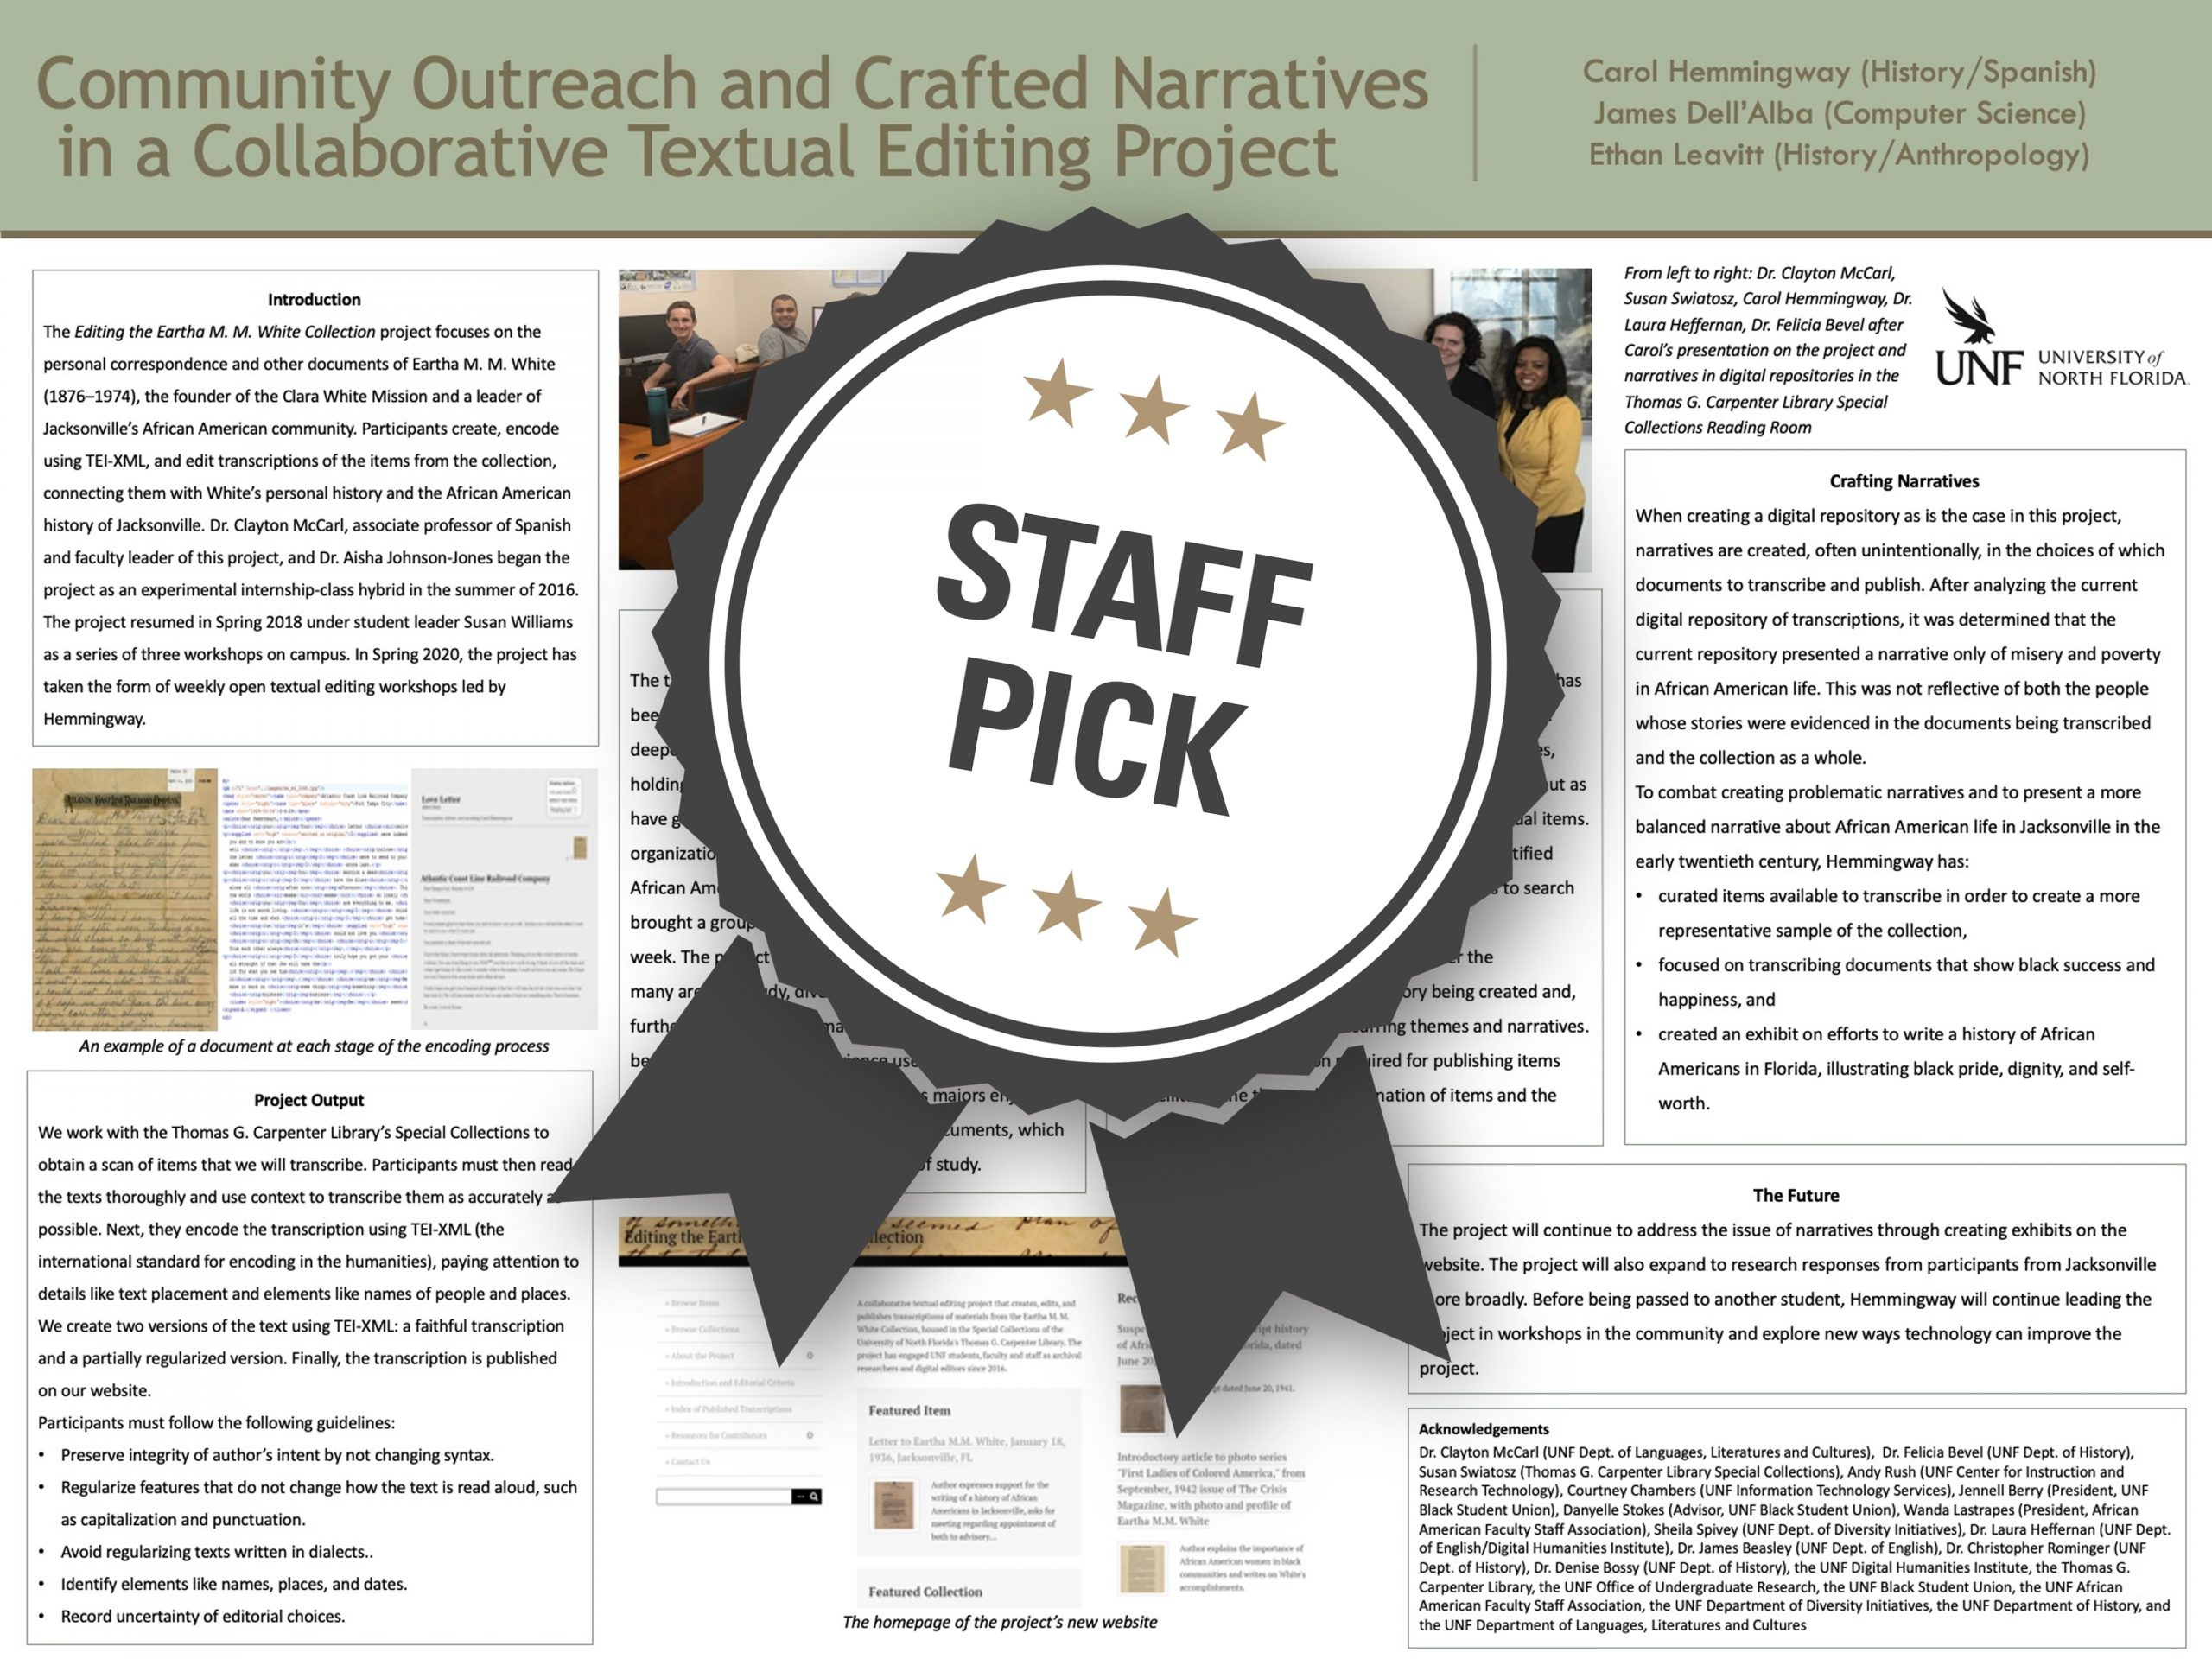 Community Outreach and Crafted Narratives in a Collaborative Textual Editing Project Staff Pick poster